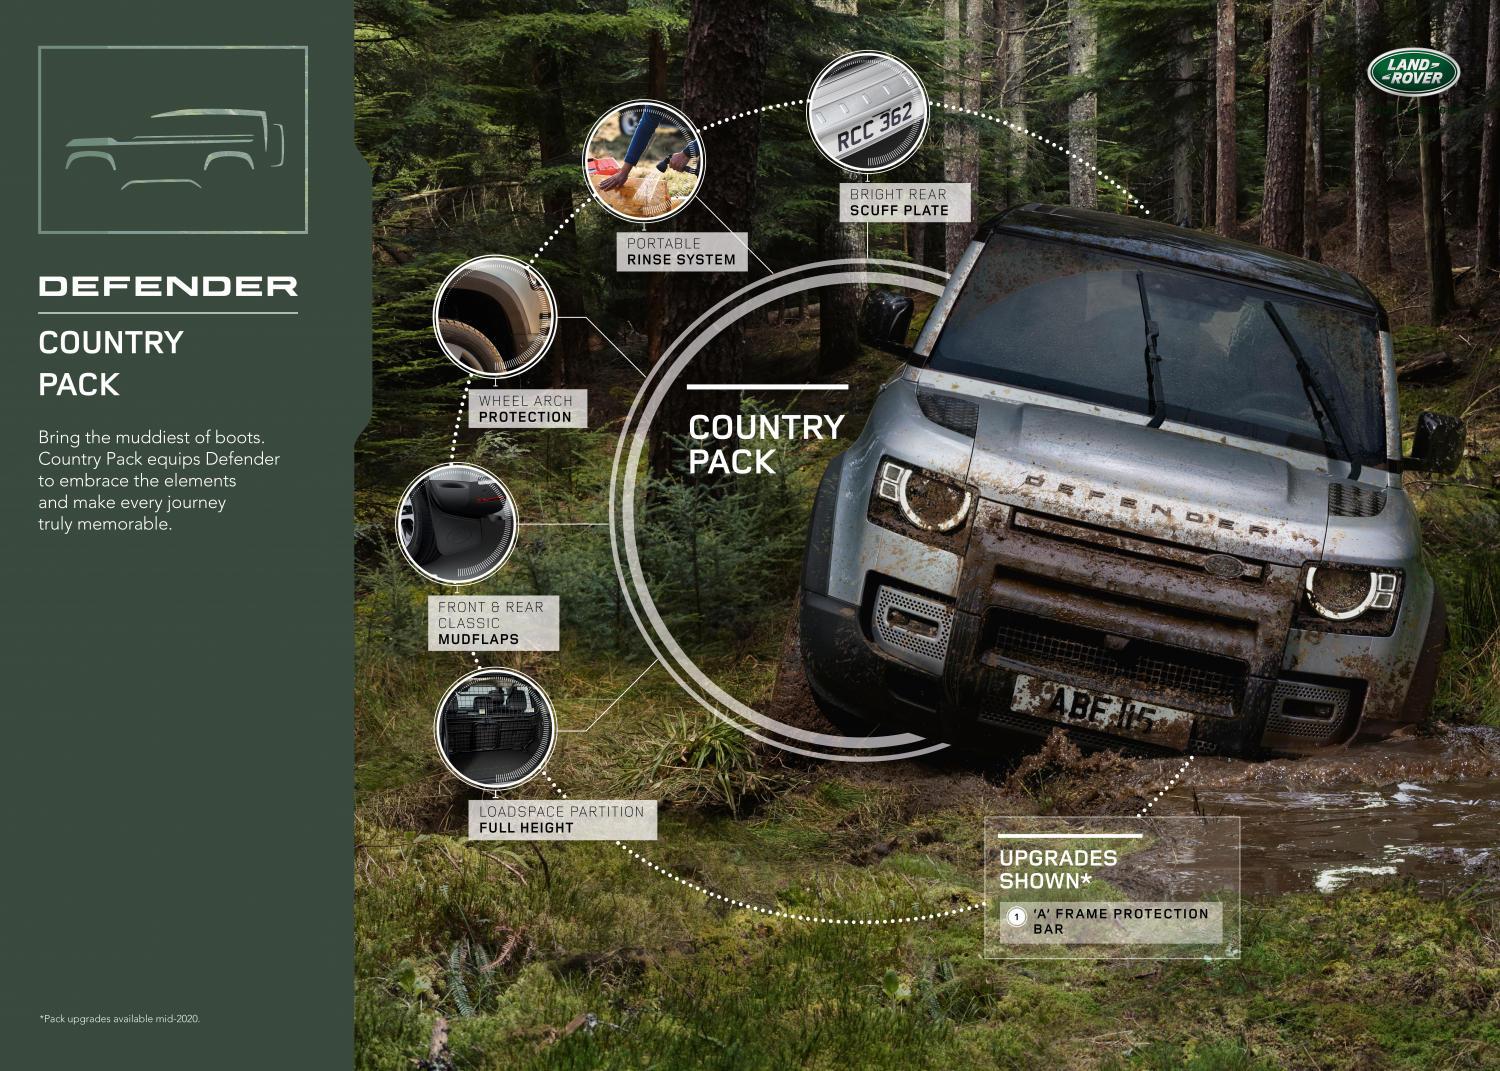 COUNTRY PACK – THE NEW DEFENDER